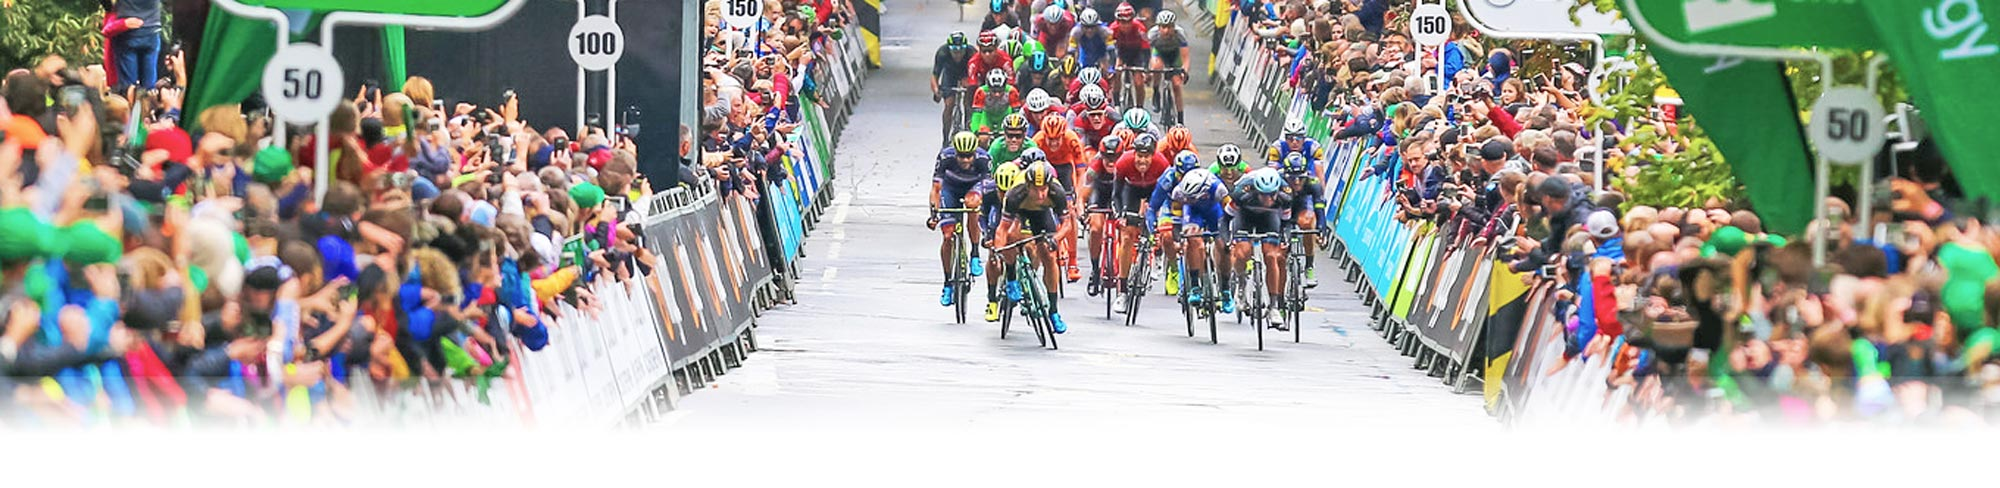 Cyclists cycling towards camera in the 2017 Tour of Britain - photo courtesy of Tour of Britain / Sweetspot